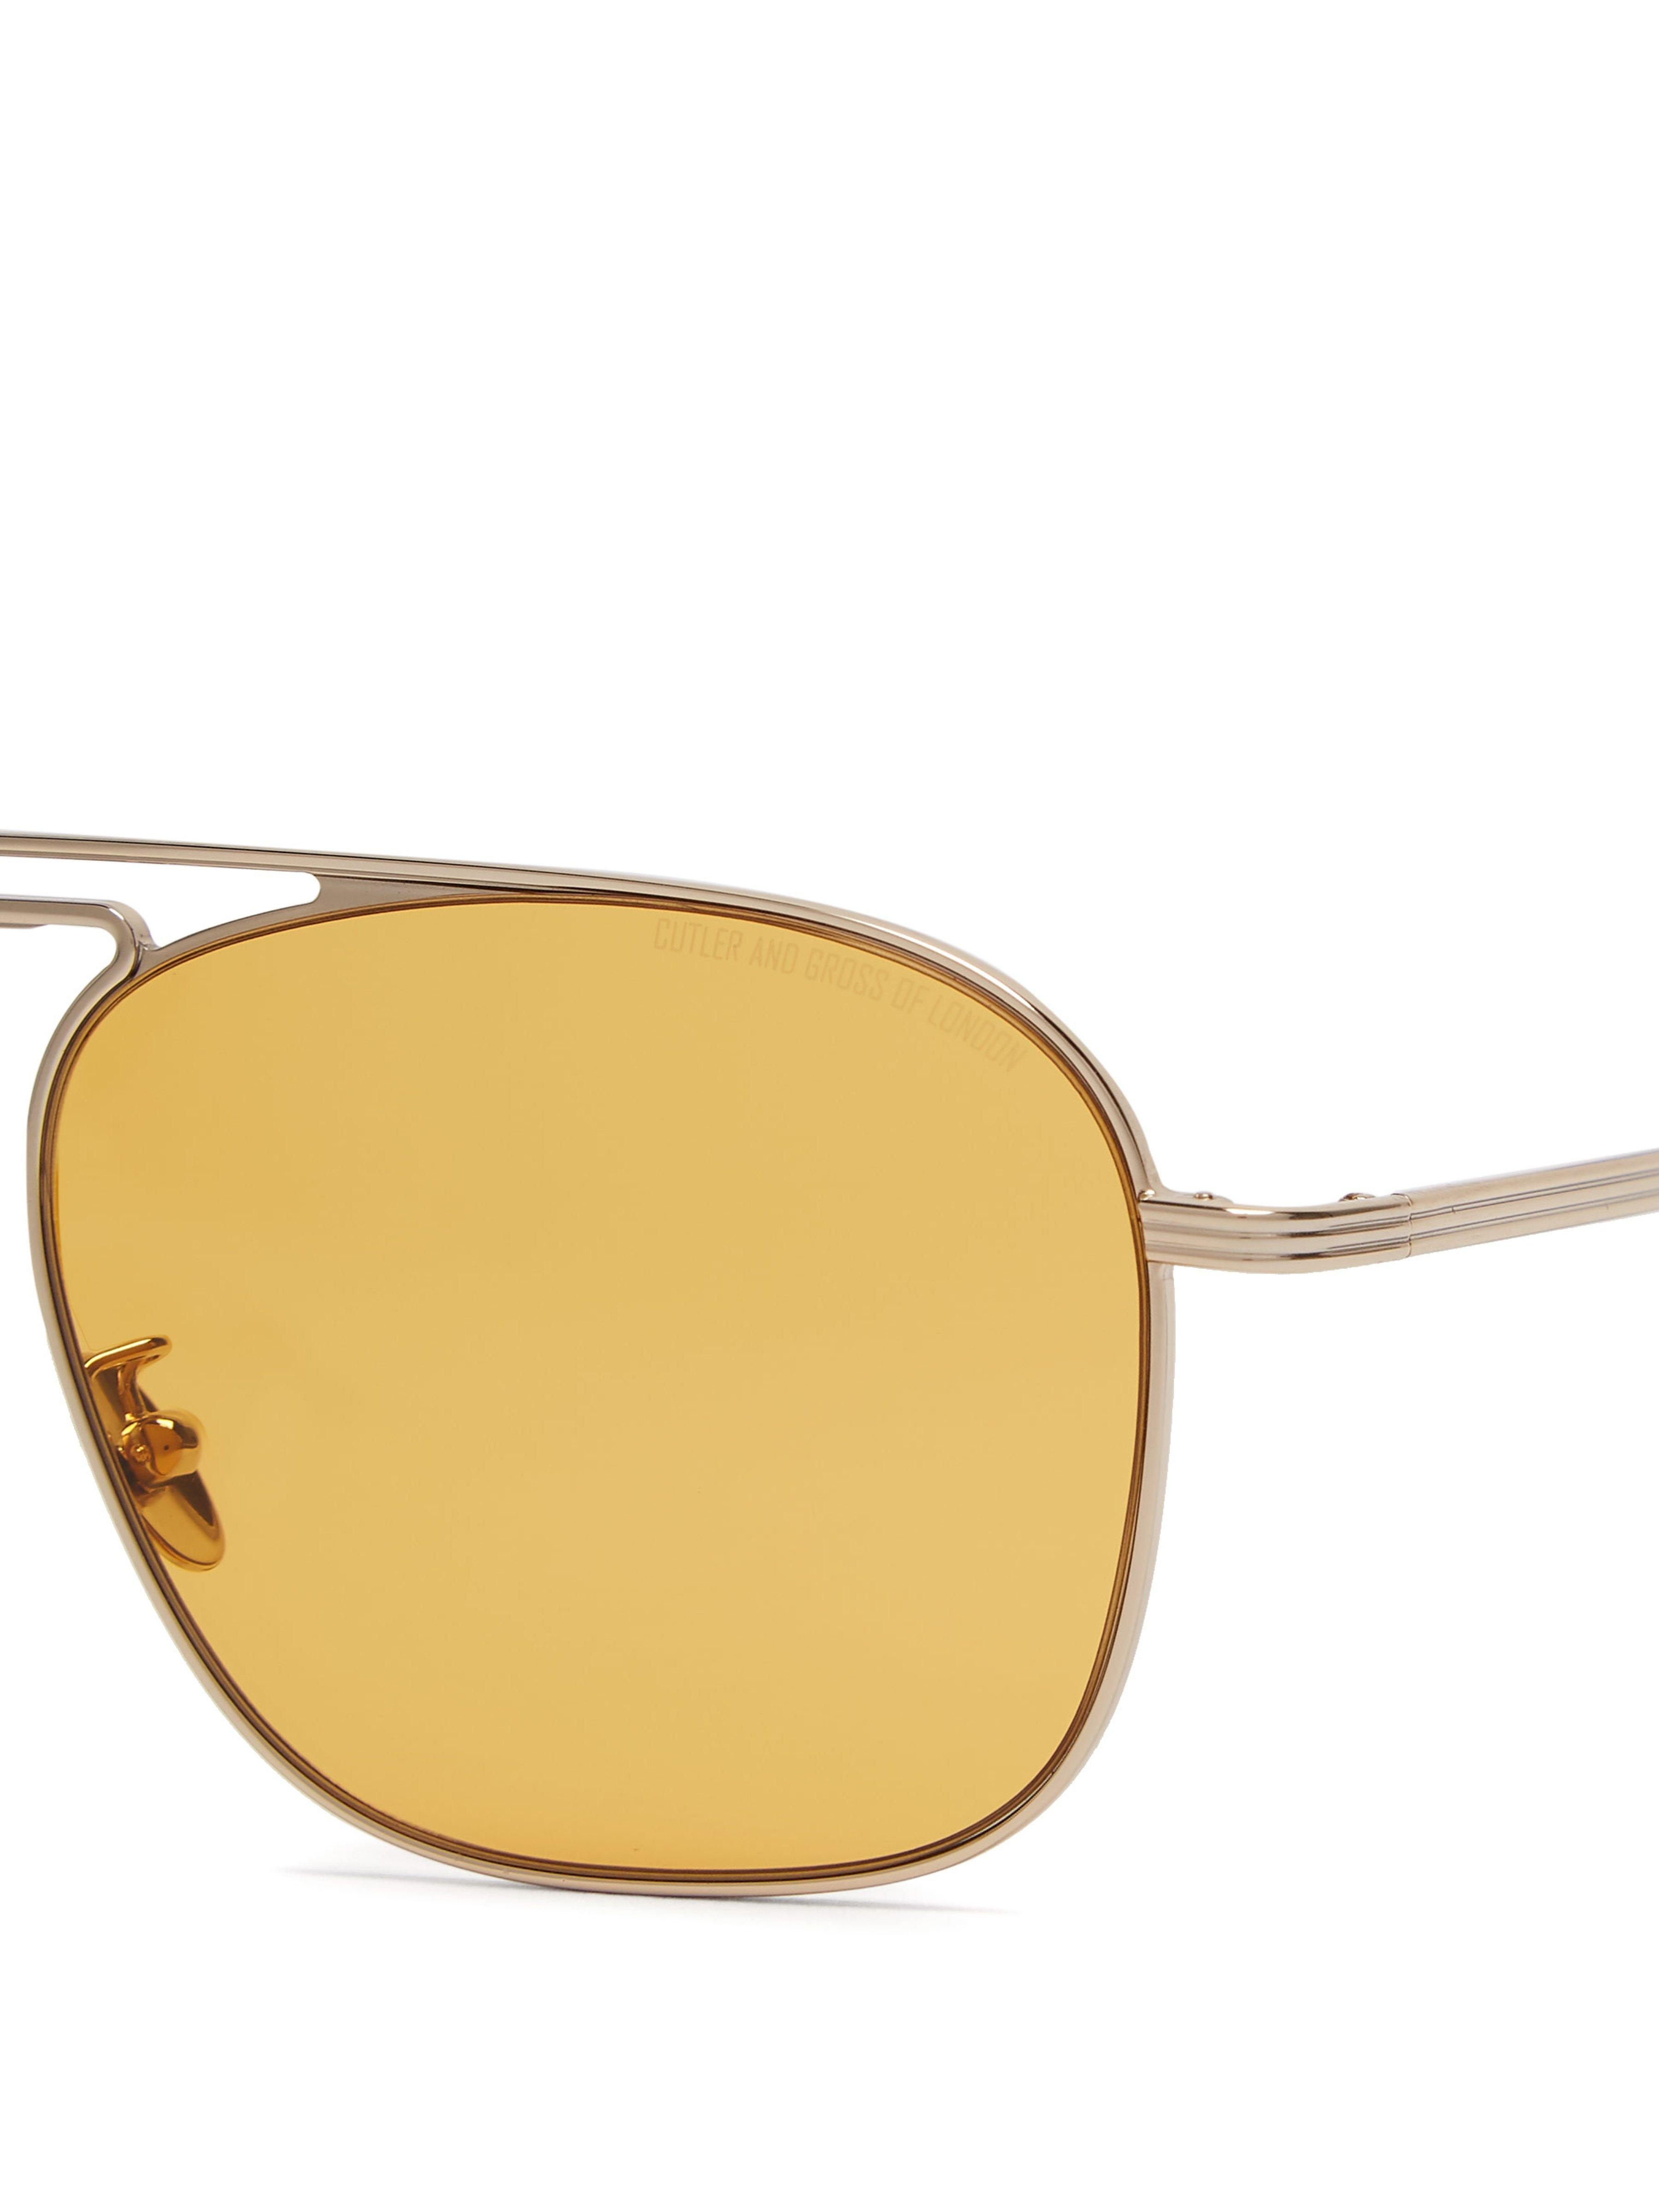 Cutler & Gross Aviator Metal Sunglasses in Silver (Metallic) for Men